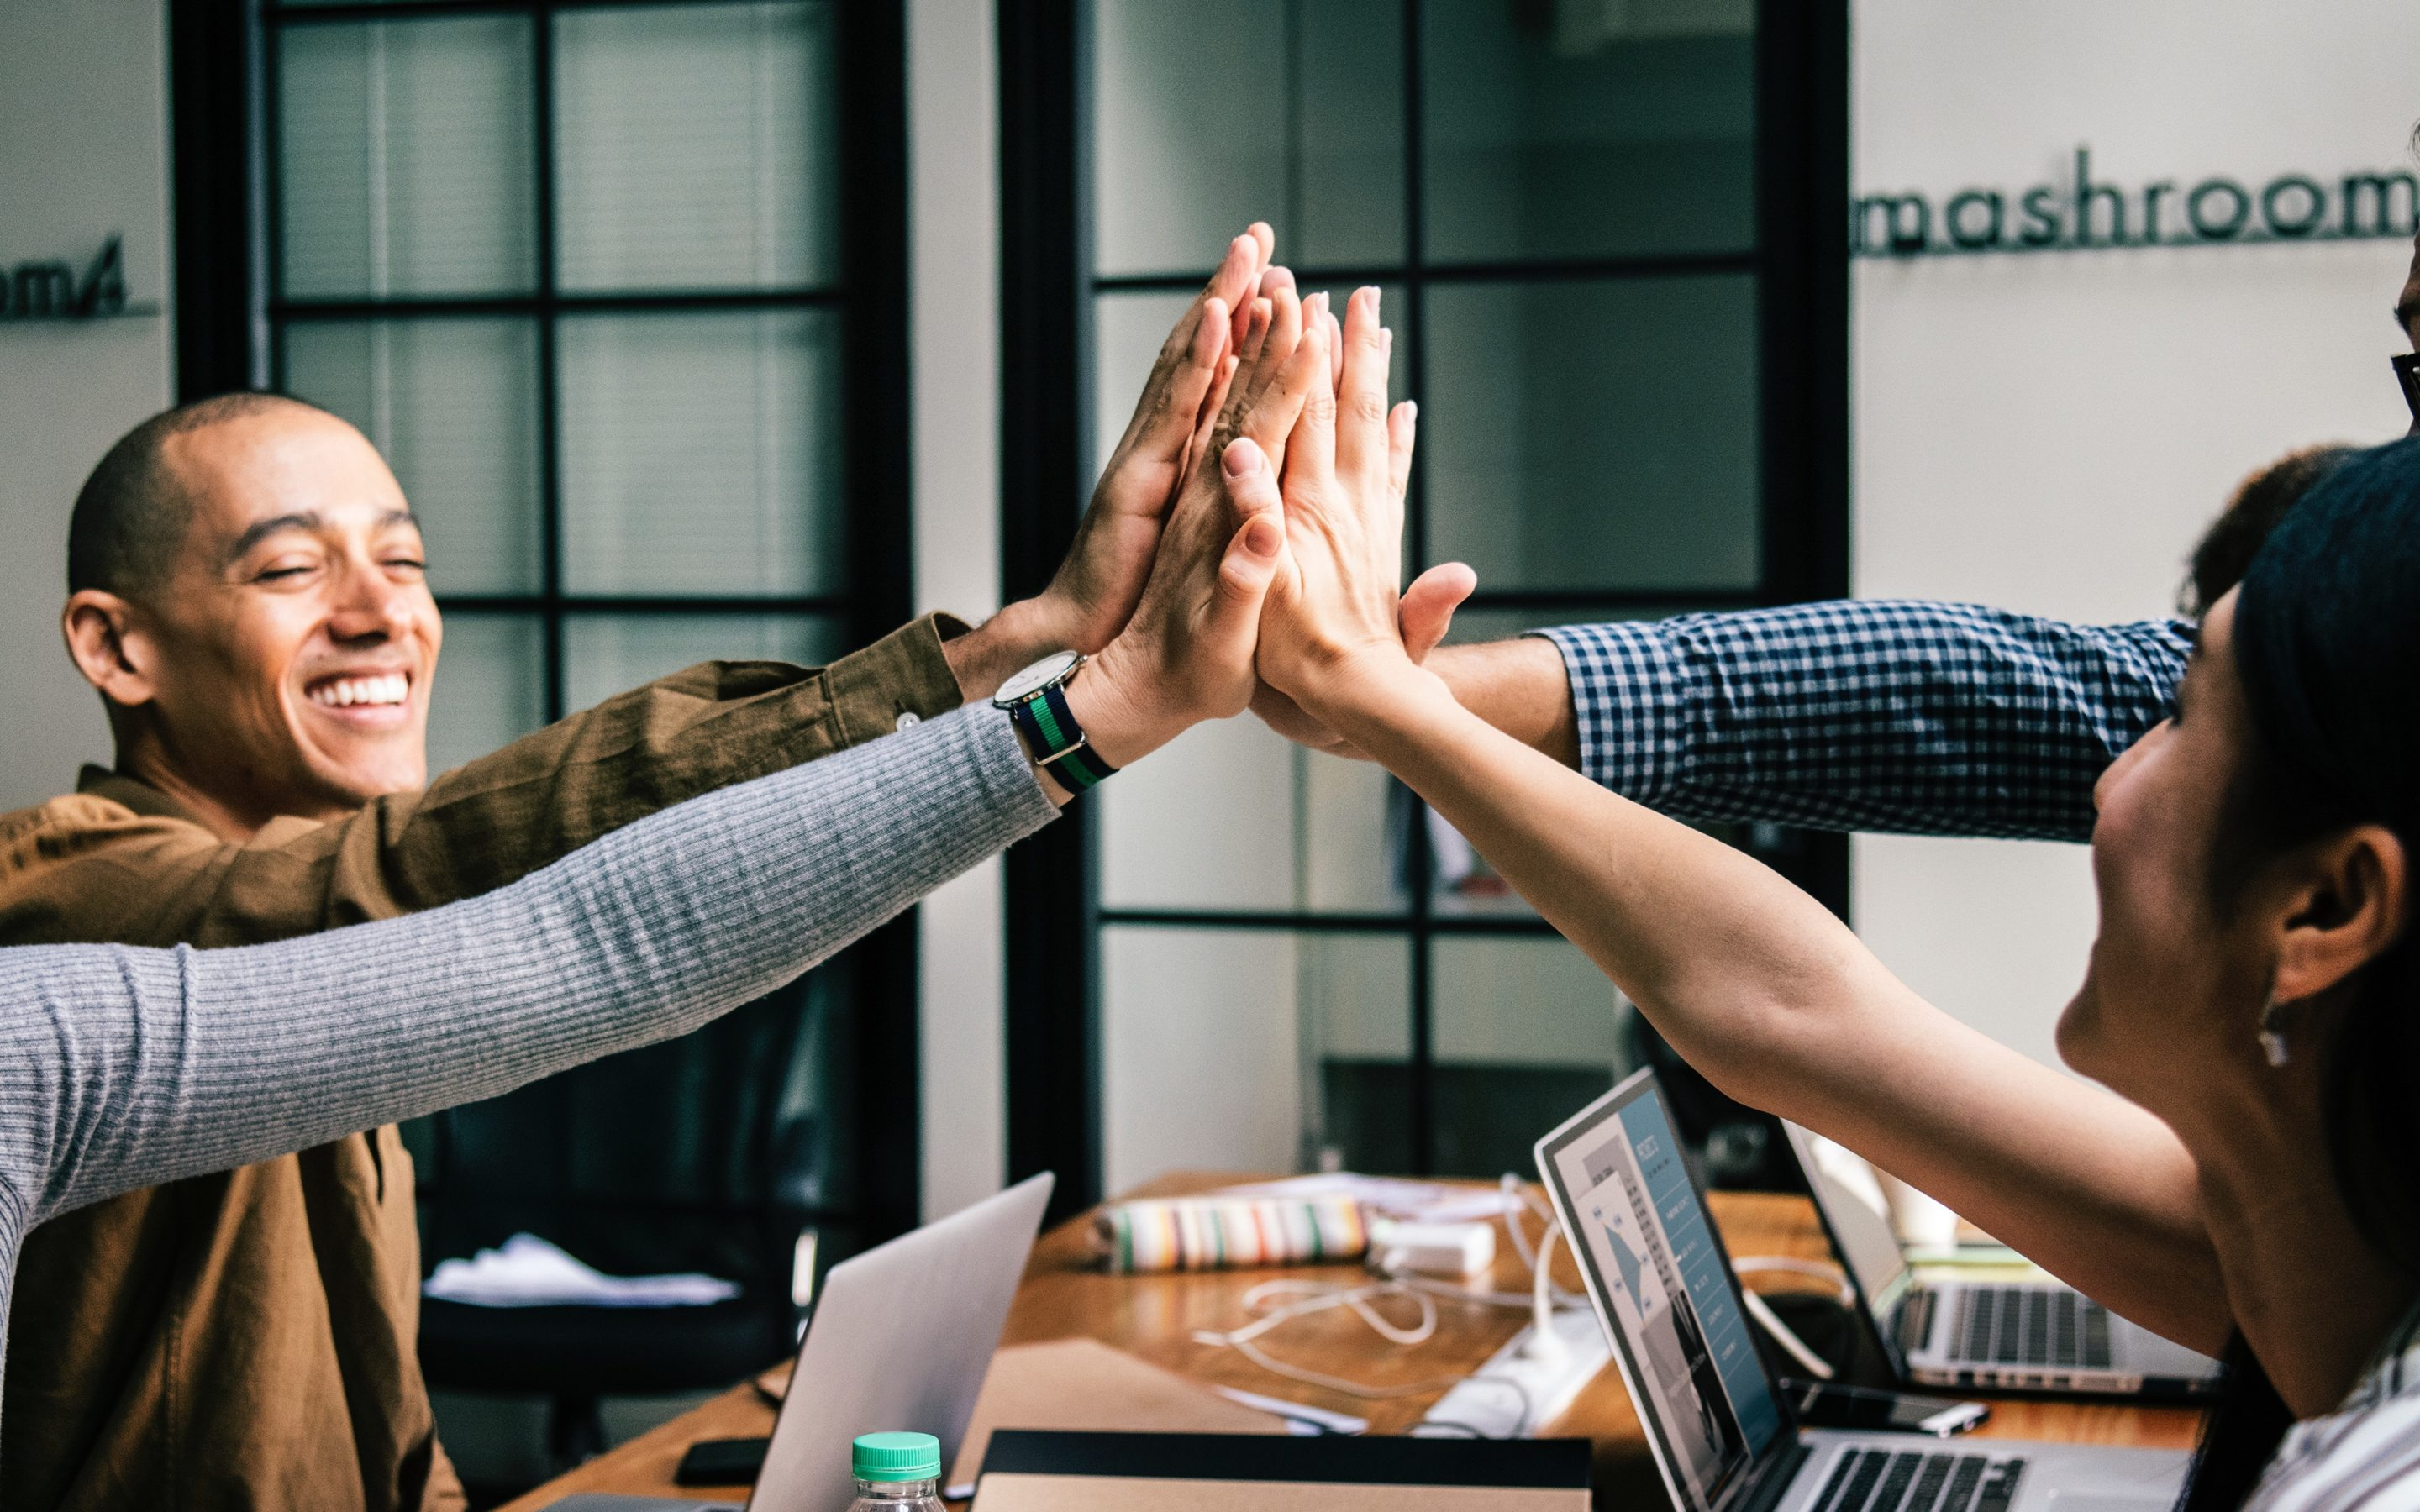 DO YOU HAVE BENEFITS FOR YOUR TEAM?